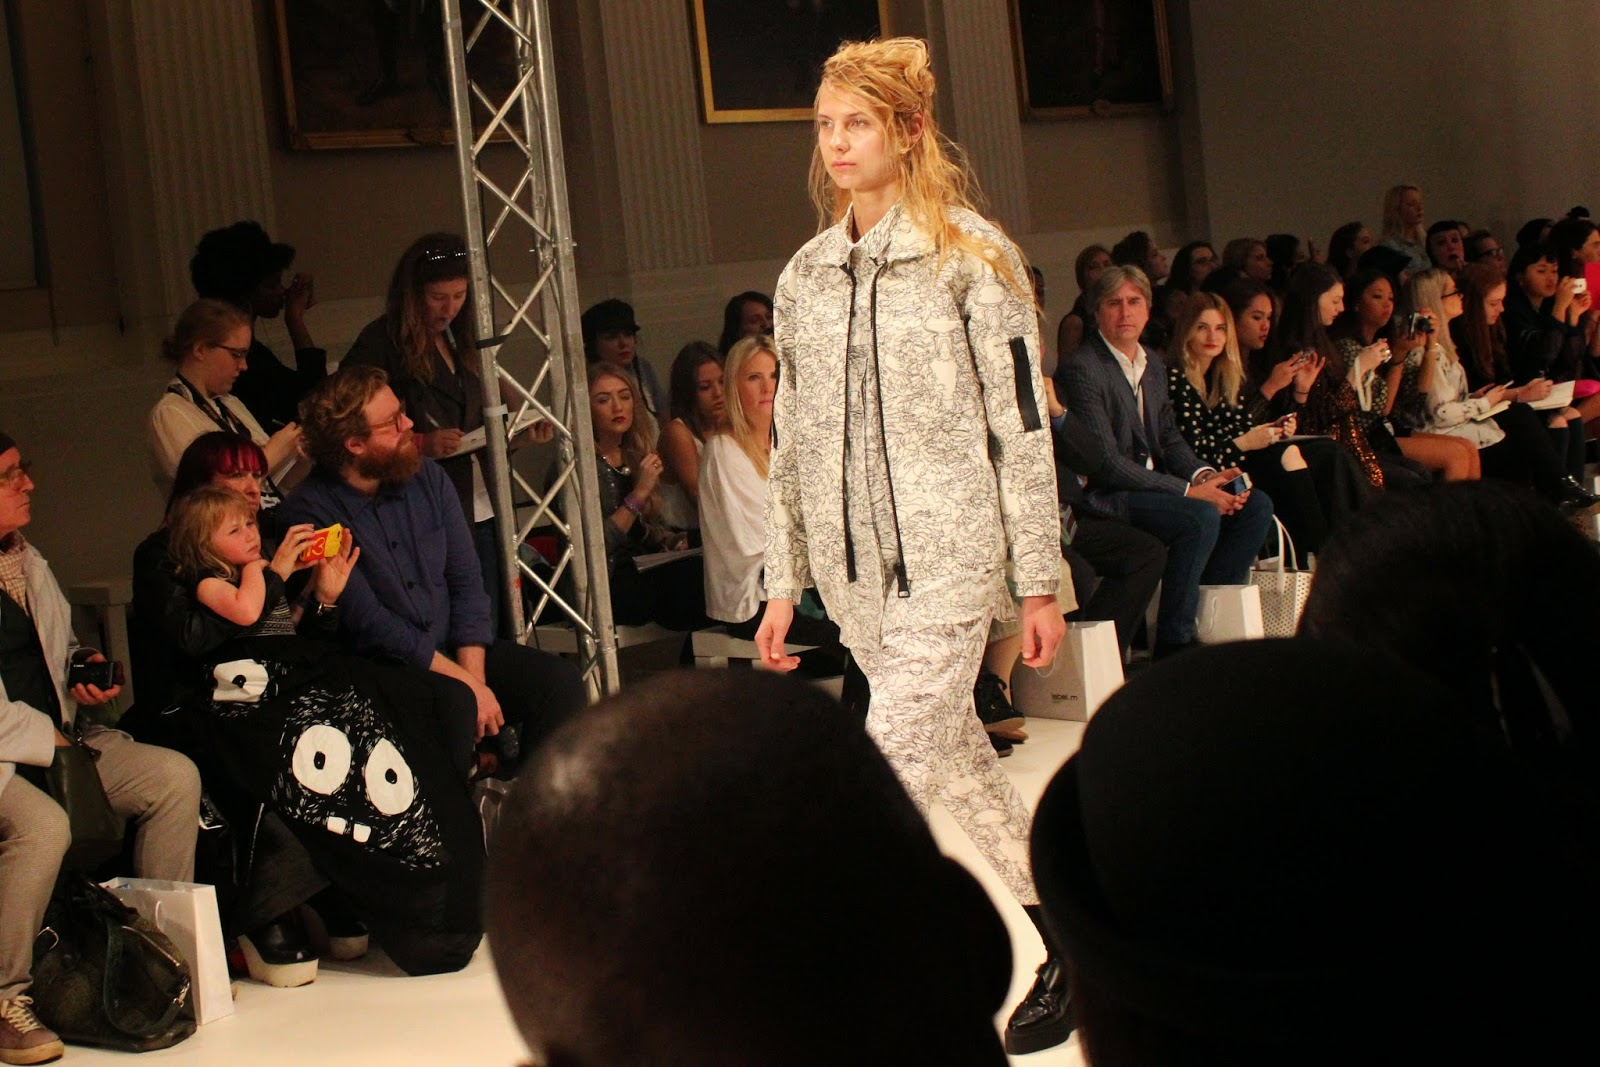 london-fashion-week-2014-lfw-spring-summer-2015-blogger-fashion-Dioralop-catwalk-models-freemasons hall-fashion-scout-jacket-shirt-trousers-shoes